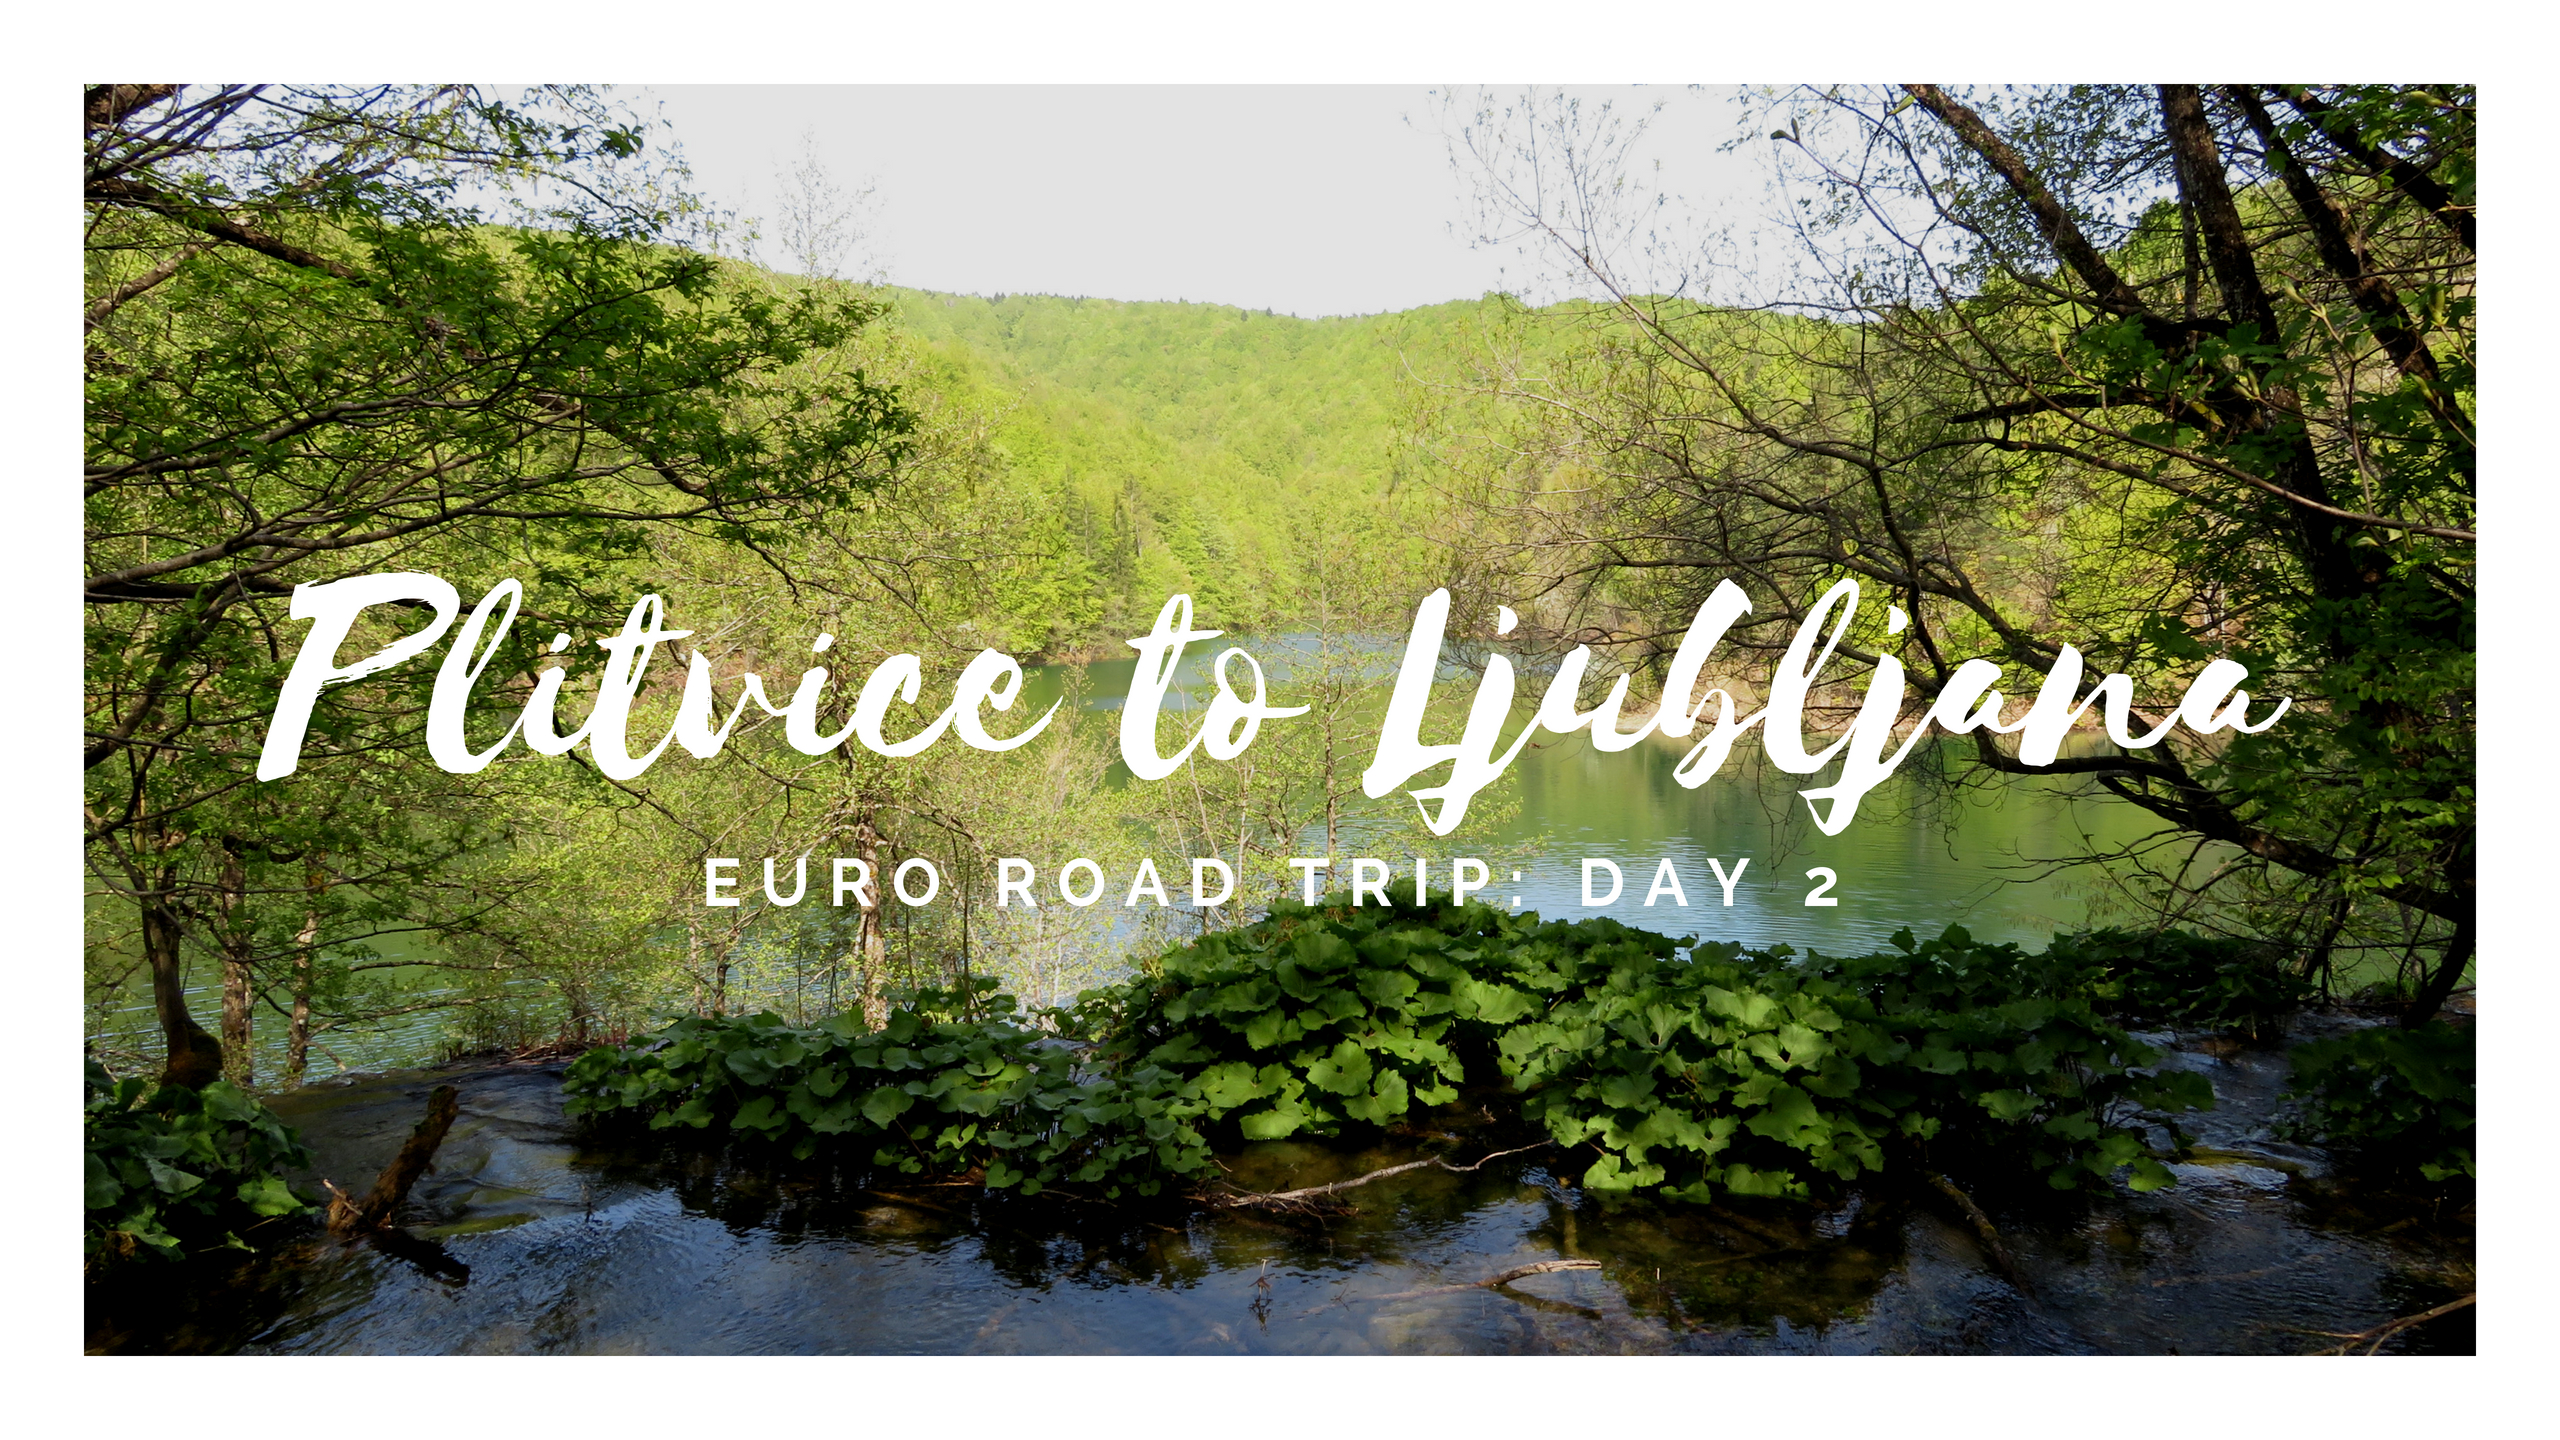 Euro Road Trip – Day 2: Plitvice to Ljubliana